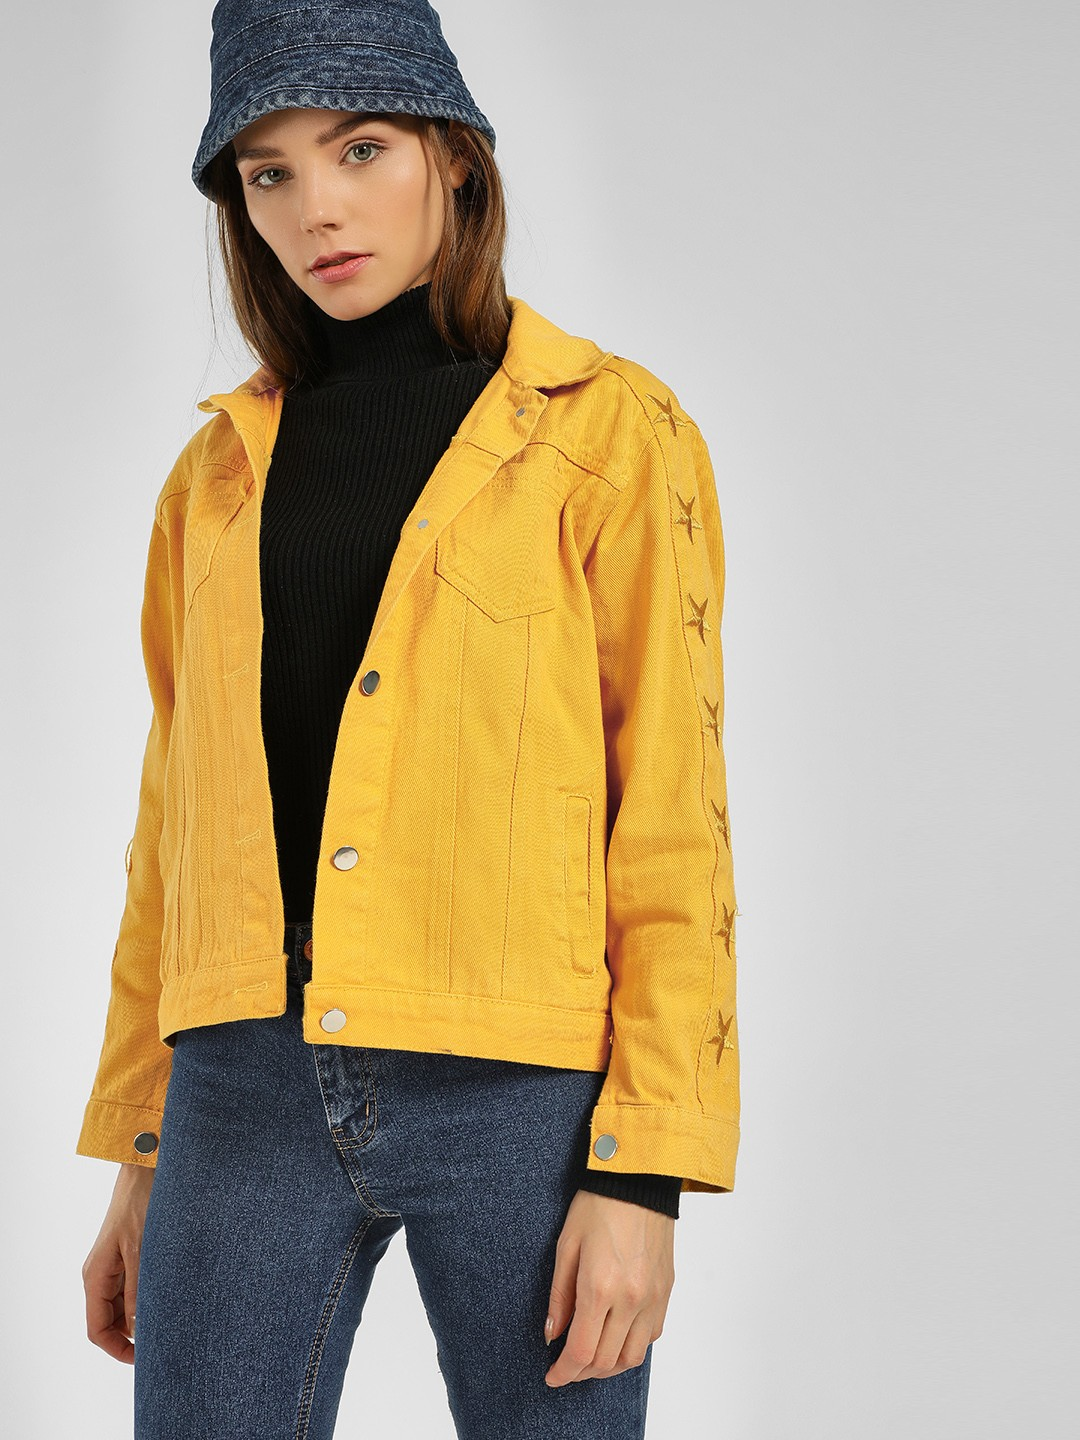 Origami Lily Yellow Star Embroidered Denim Jacket 1